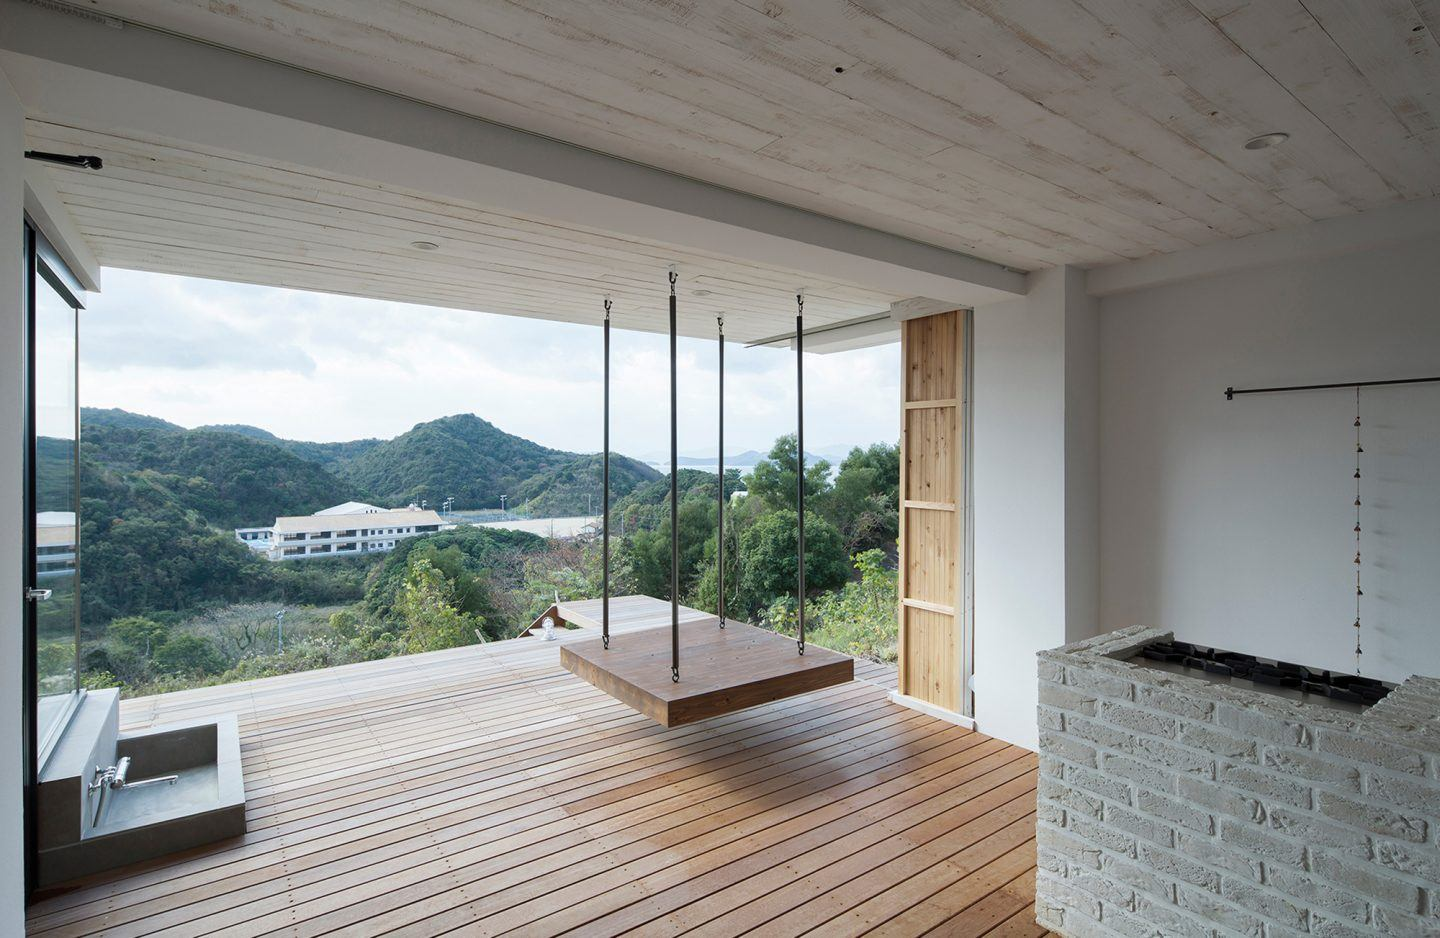 IGNANT-Design-ADesign-Award-Competition-Noriaki-Takeda-Ikuma-Yoshizawa-T-Weekend-Residence-2